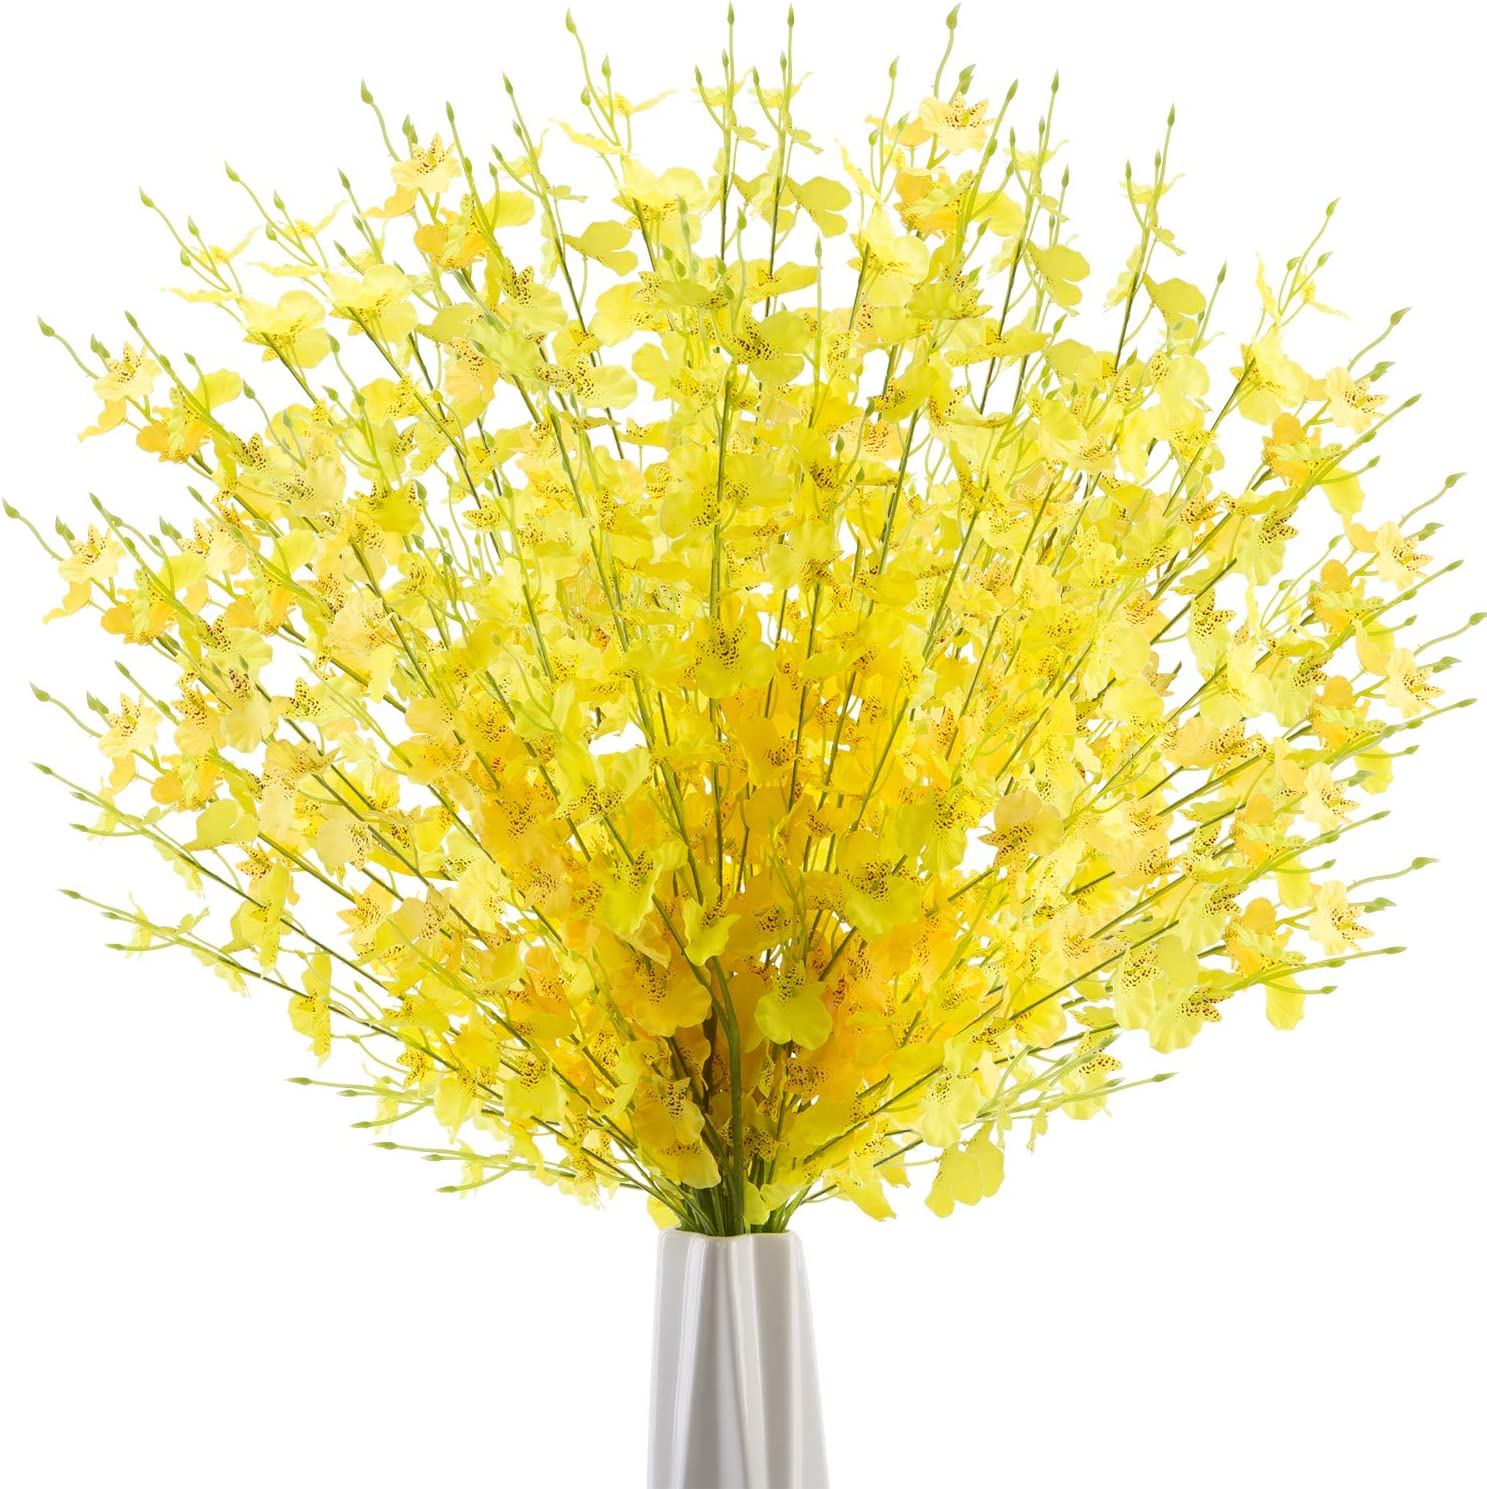 JOEJISN Artificial Orchid Flowers Faux Dancing Lady Orchids 10 Pcs Long Stem Silk Fake Flowers for Indoor Outdoor Wedding Home Kitchen Office Festive Party Decoration (Yellow)